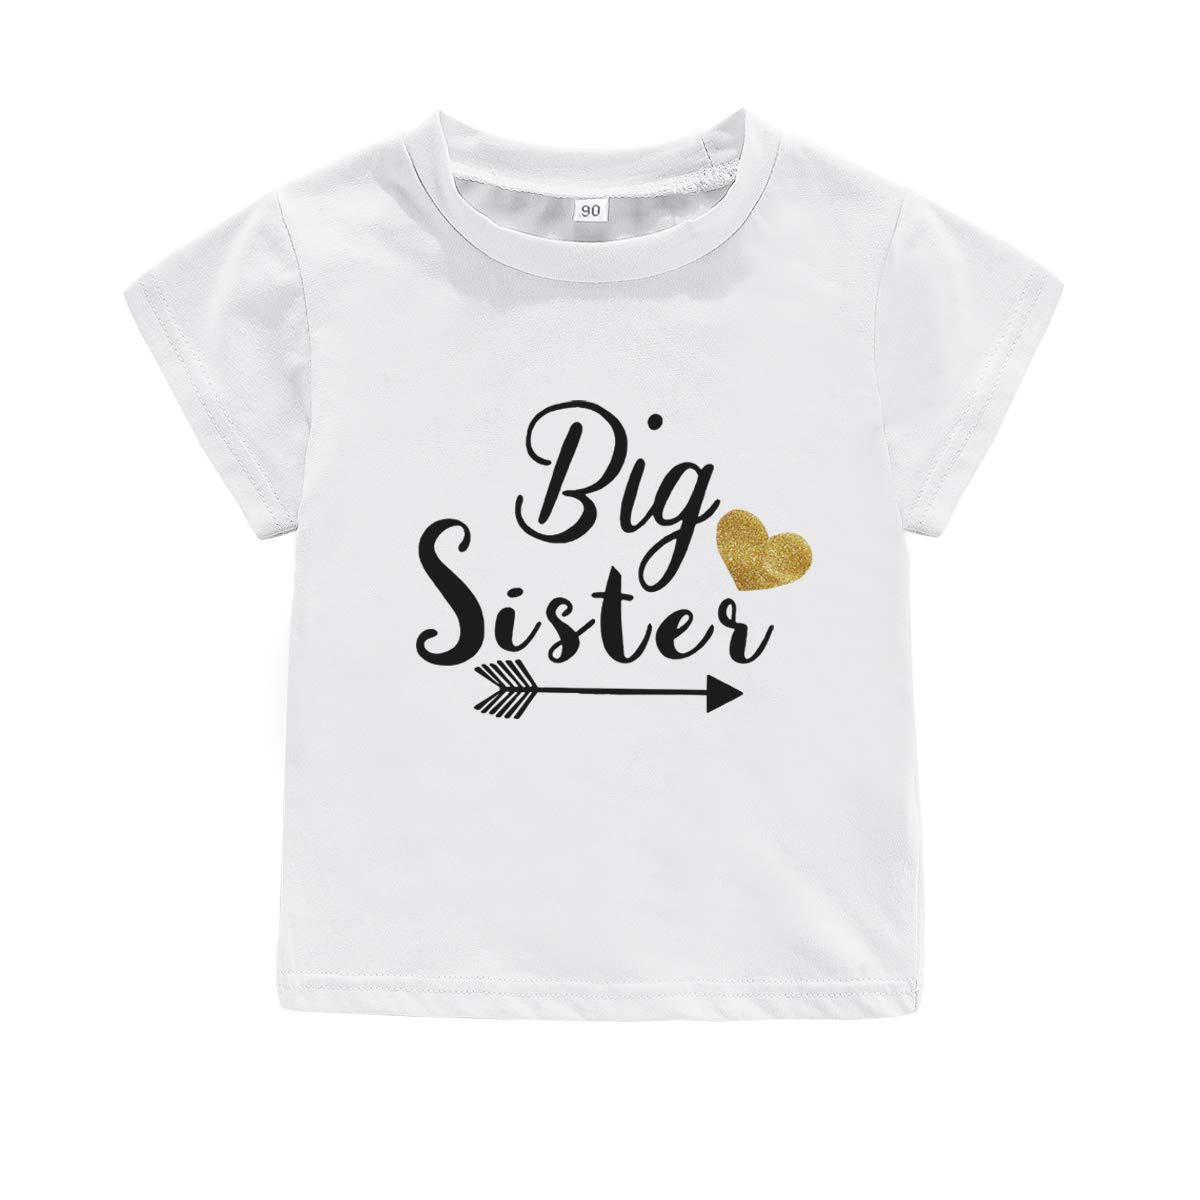 Little Baby Girls Clothes Promoted to Big Sister Print T Shirt Tops, Big Sister Tees as Gift (Style 2 - Big Sister (White), 120/for 3-4 Years)